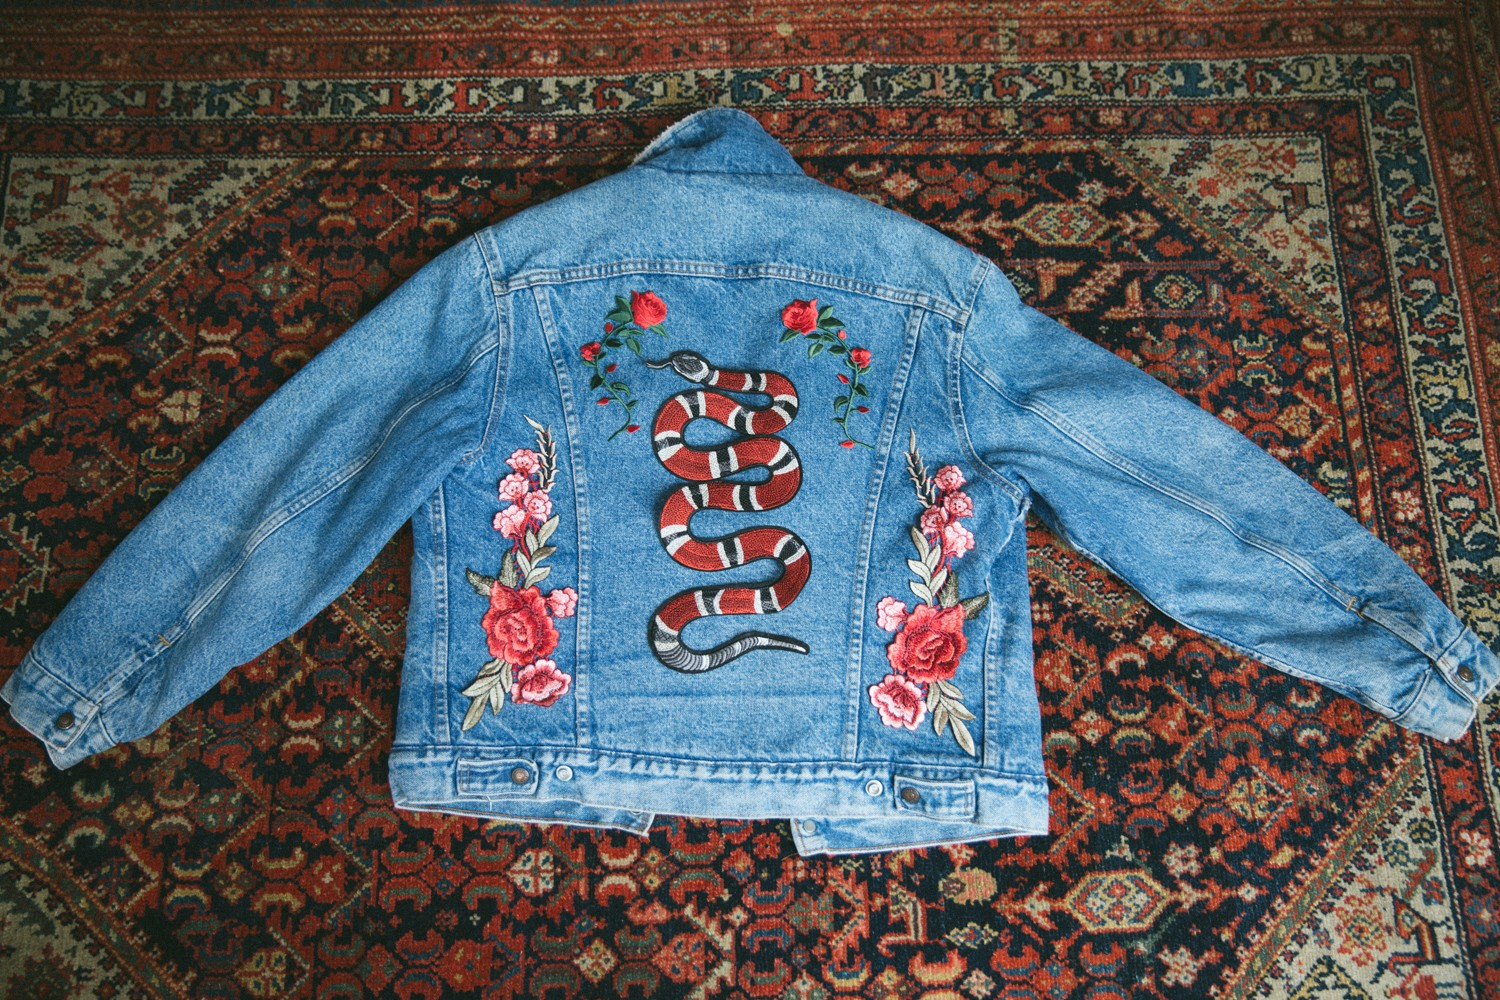 Vintage Levis Jacket Embroidery DIY